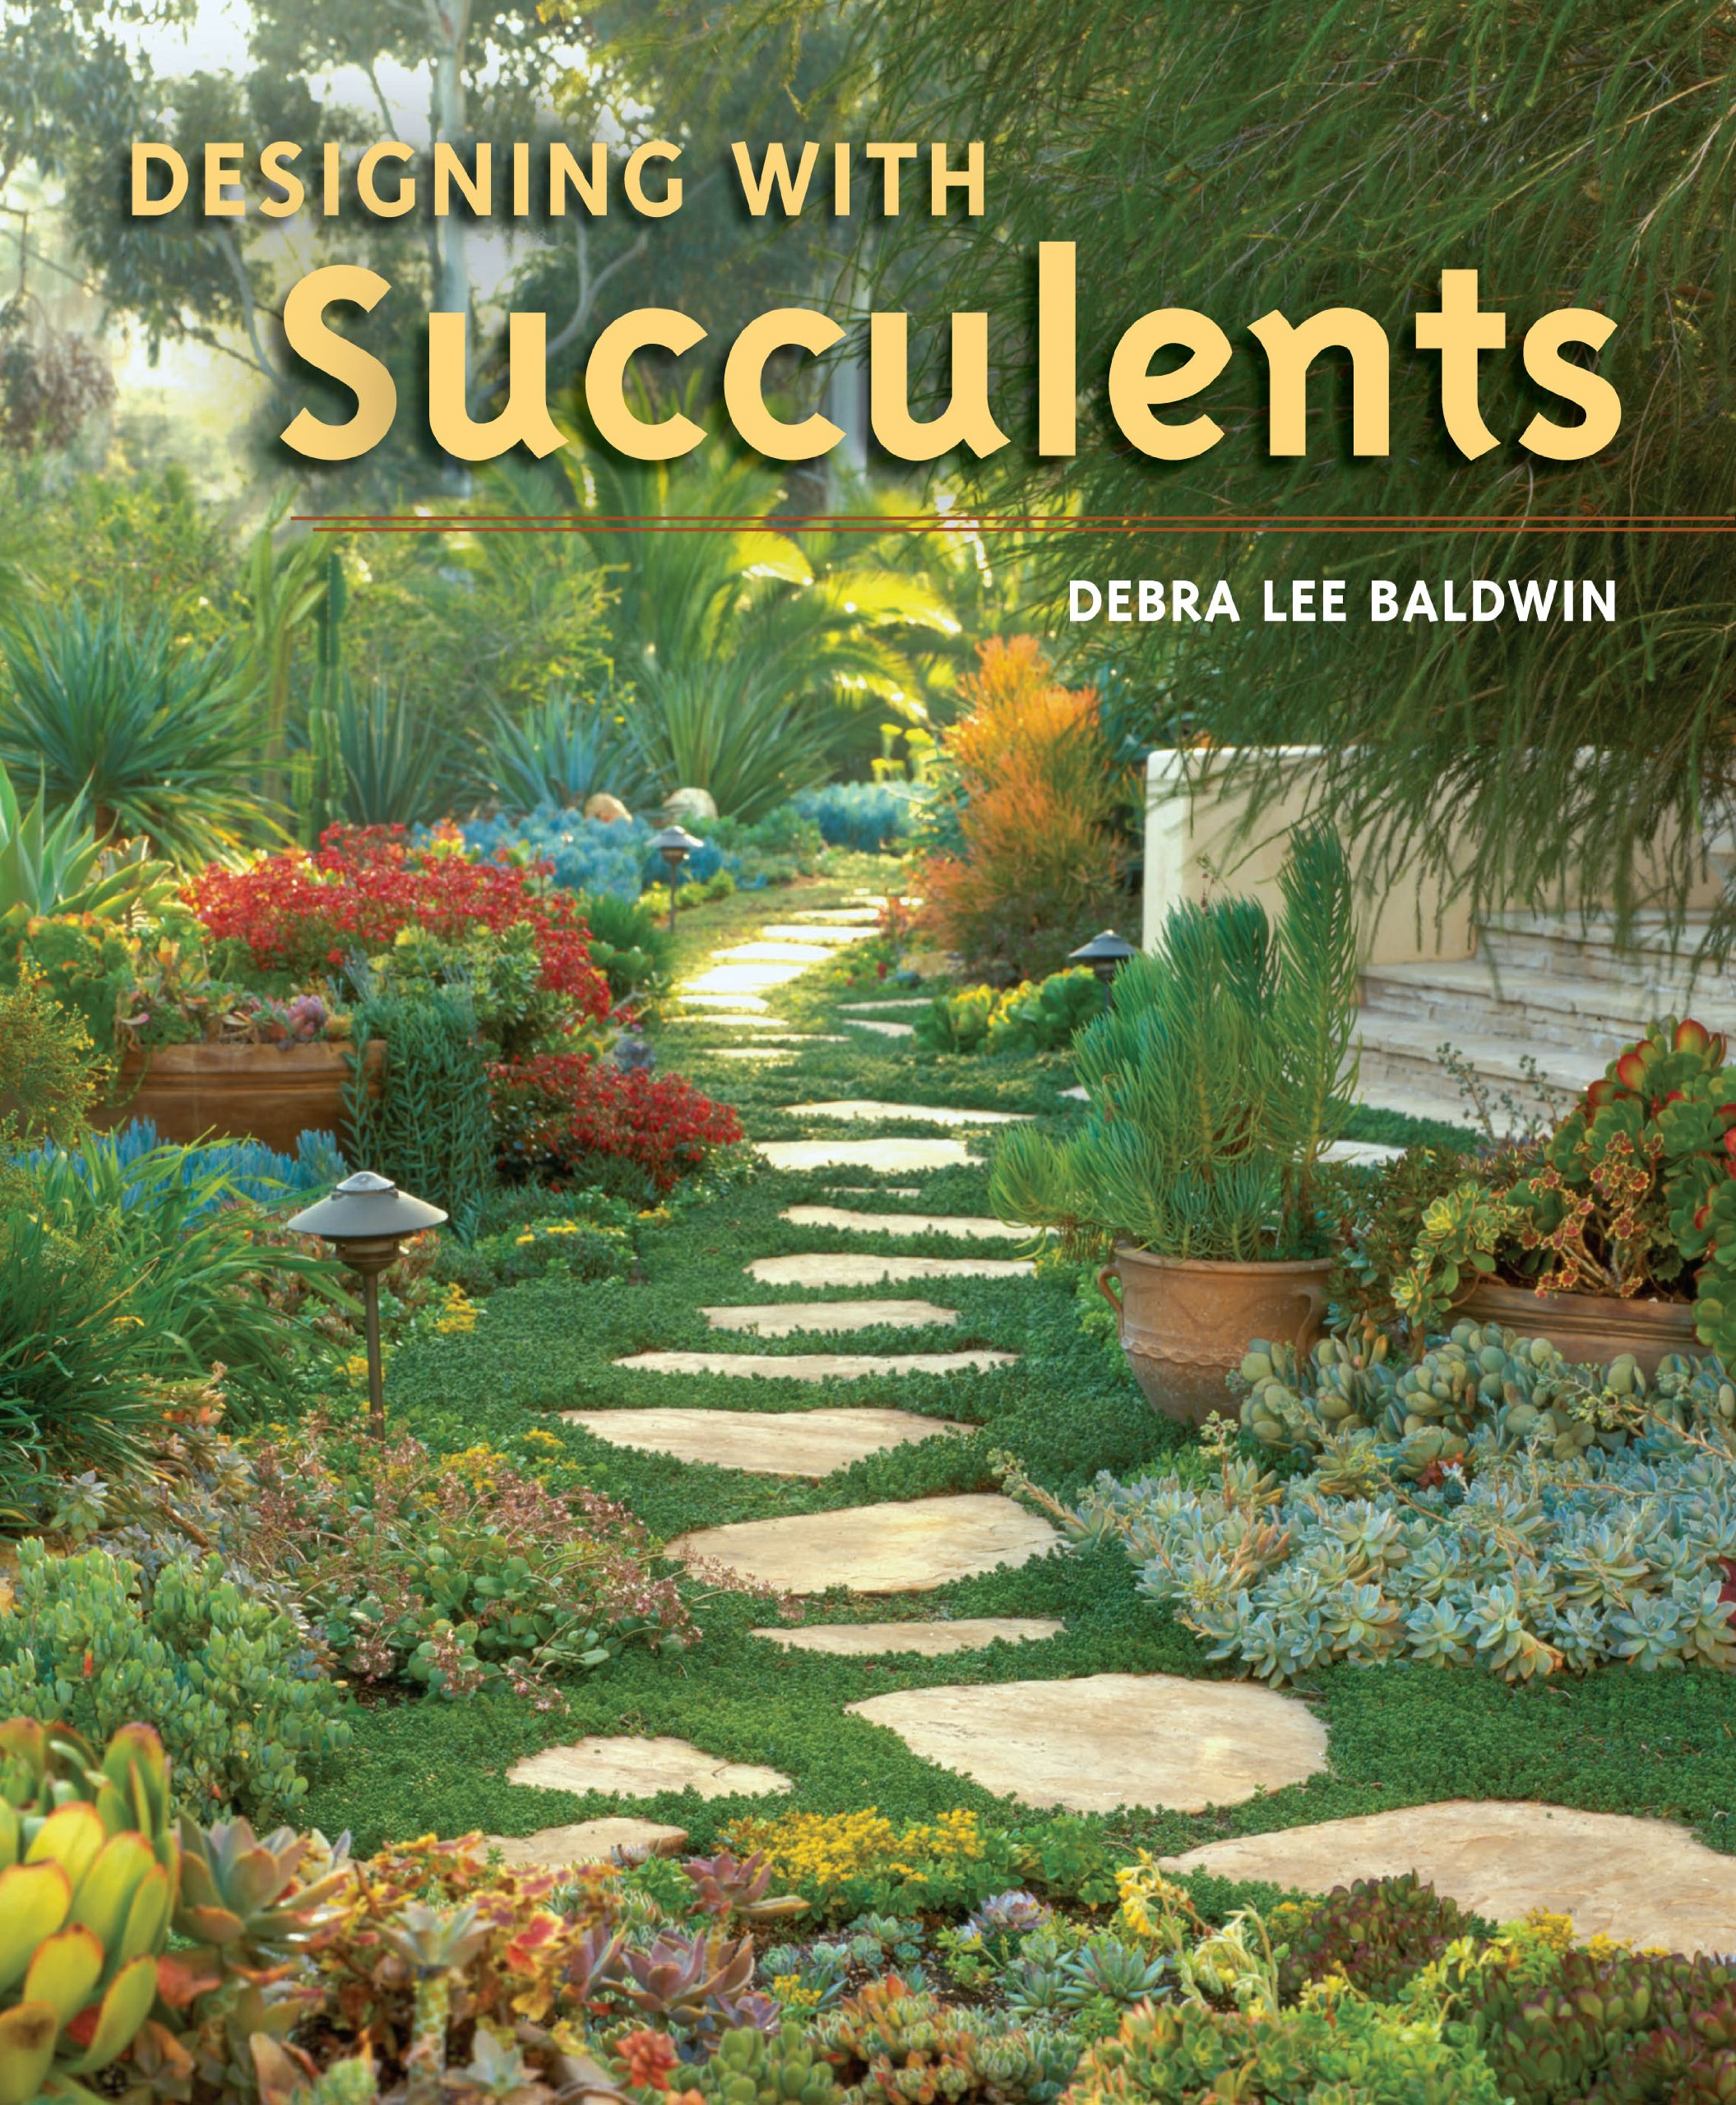 Beautiful Designing With Succulents: Debra Lee Baldwin: 9780881928167: Amazon.com:  Books